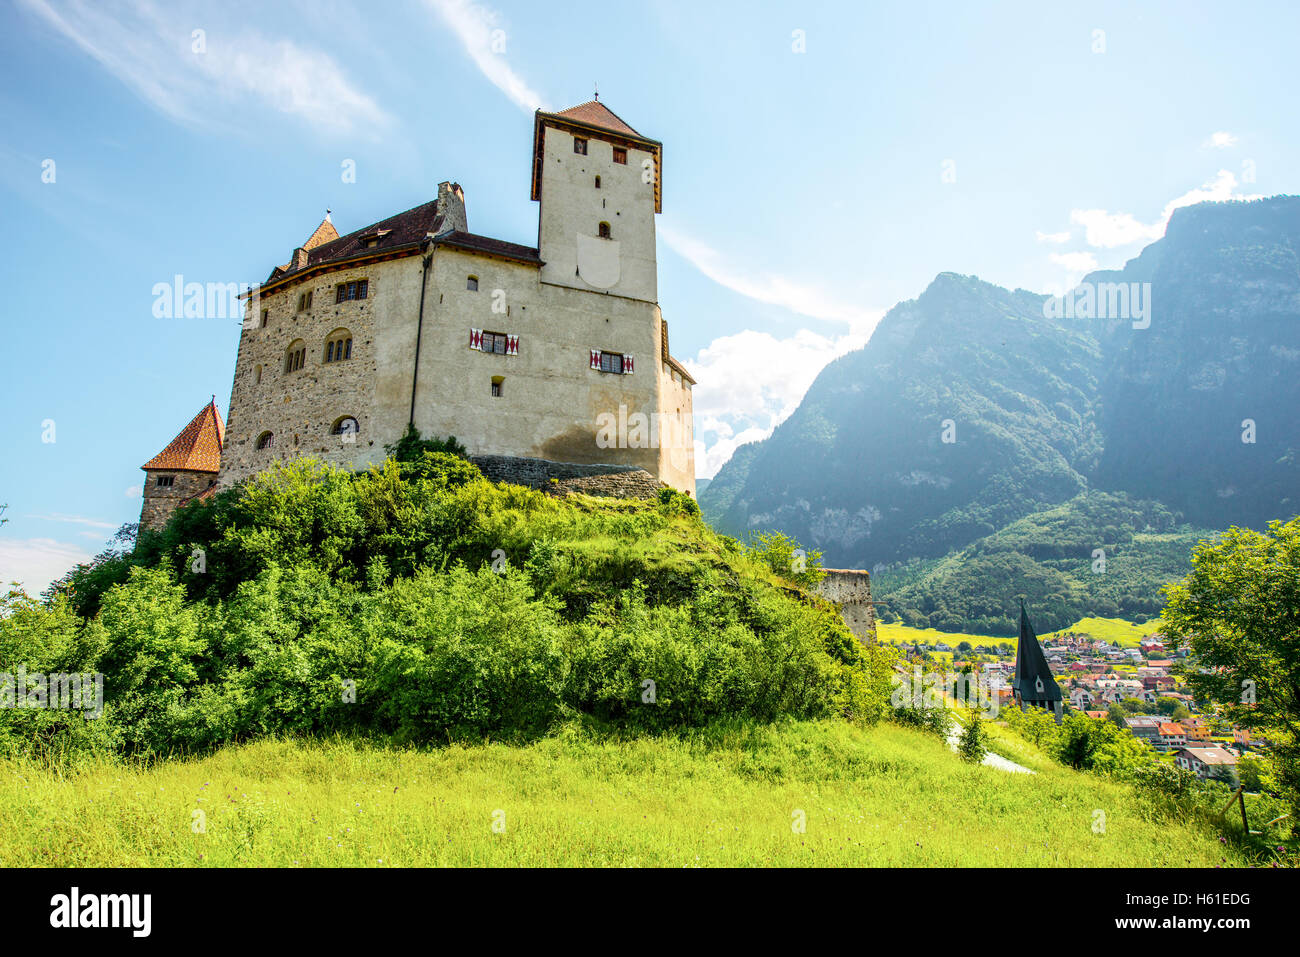 Gutenberg castle in Liechtenstein - Stock Image